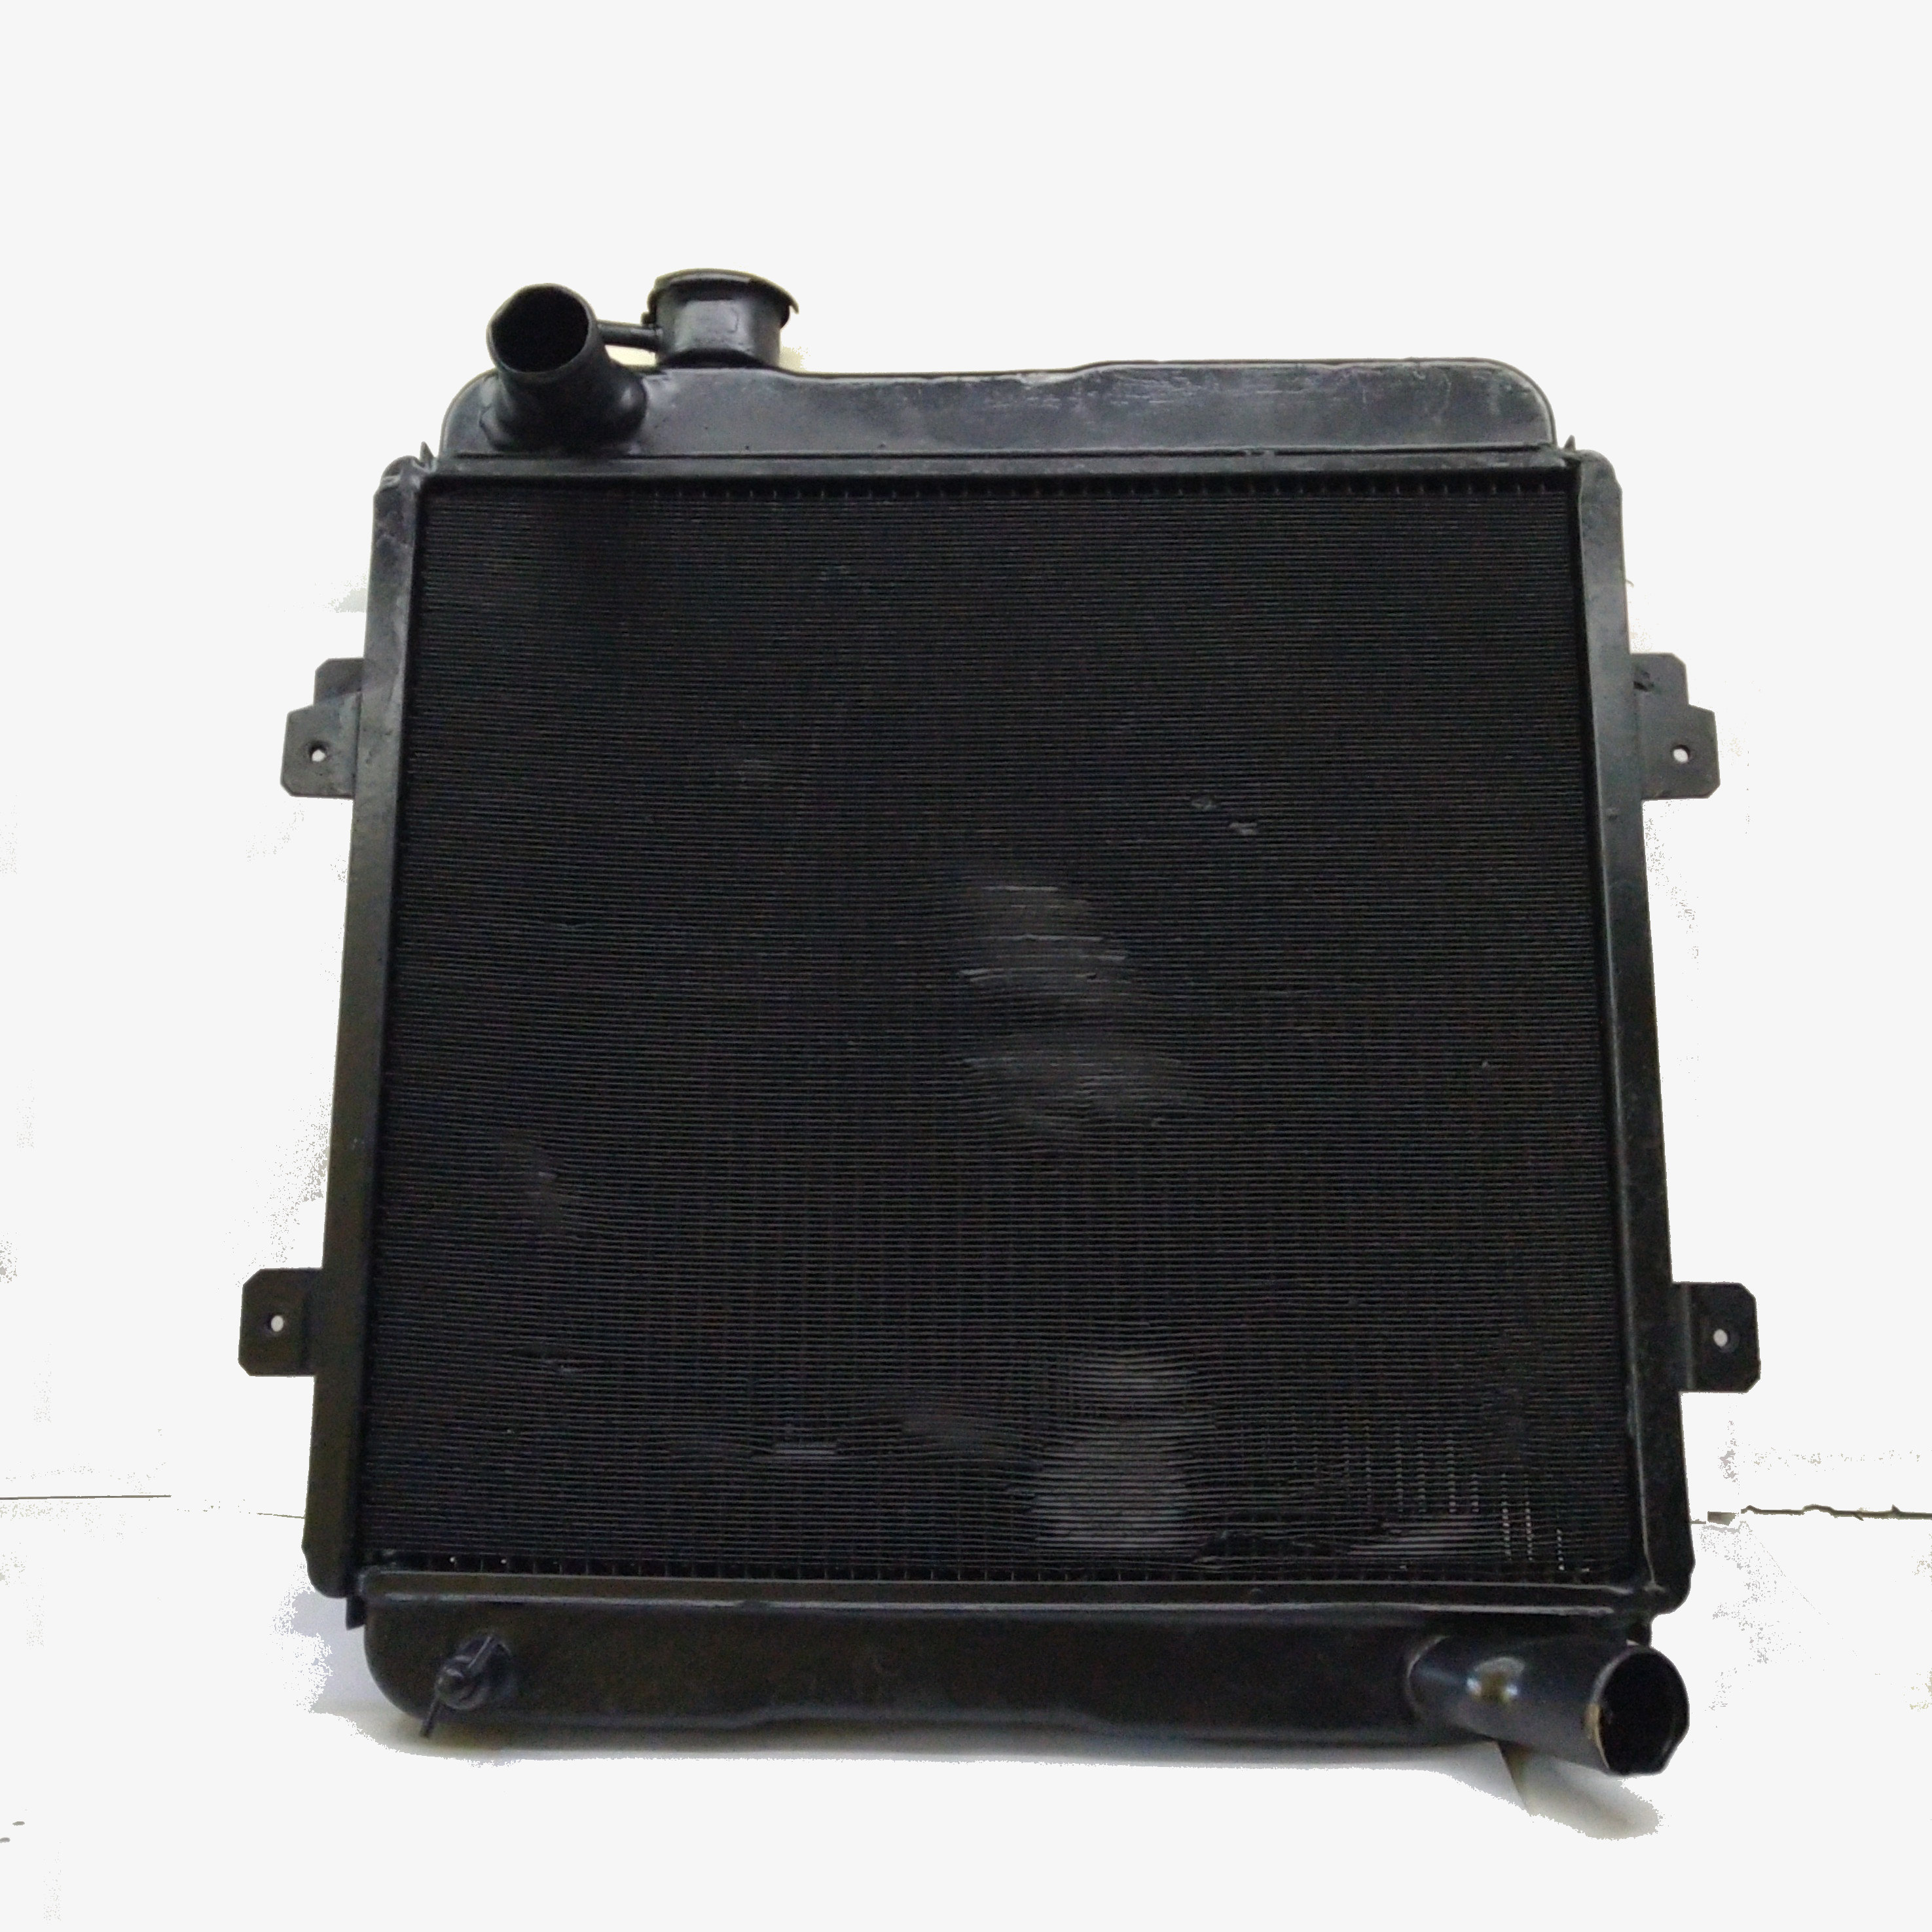 RECONDITIONED ENGINE COOLING RADIATOR FIAT 124 SPECIAL FOR 4292592